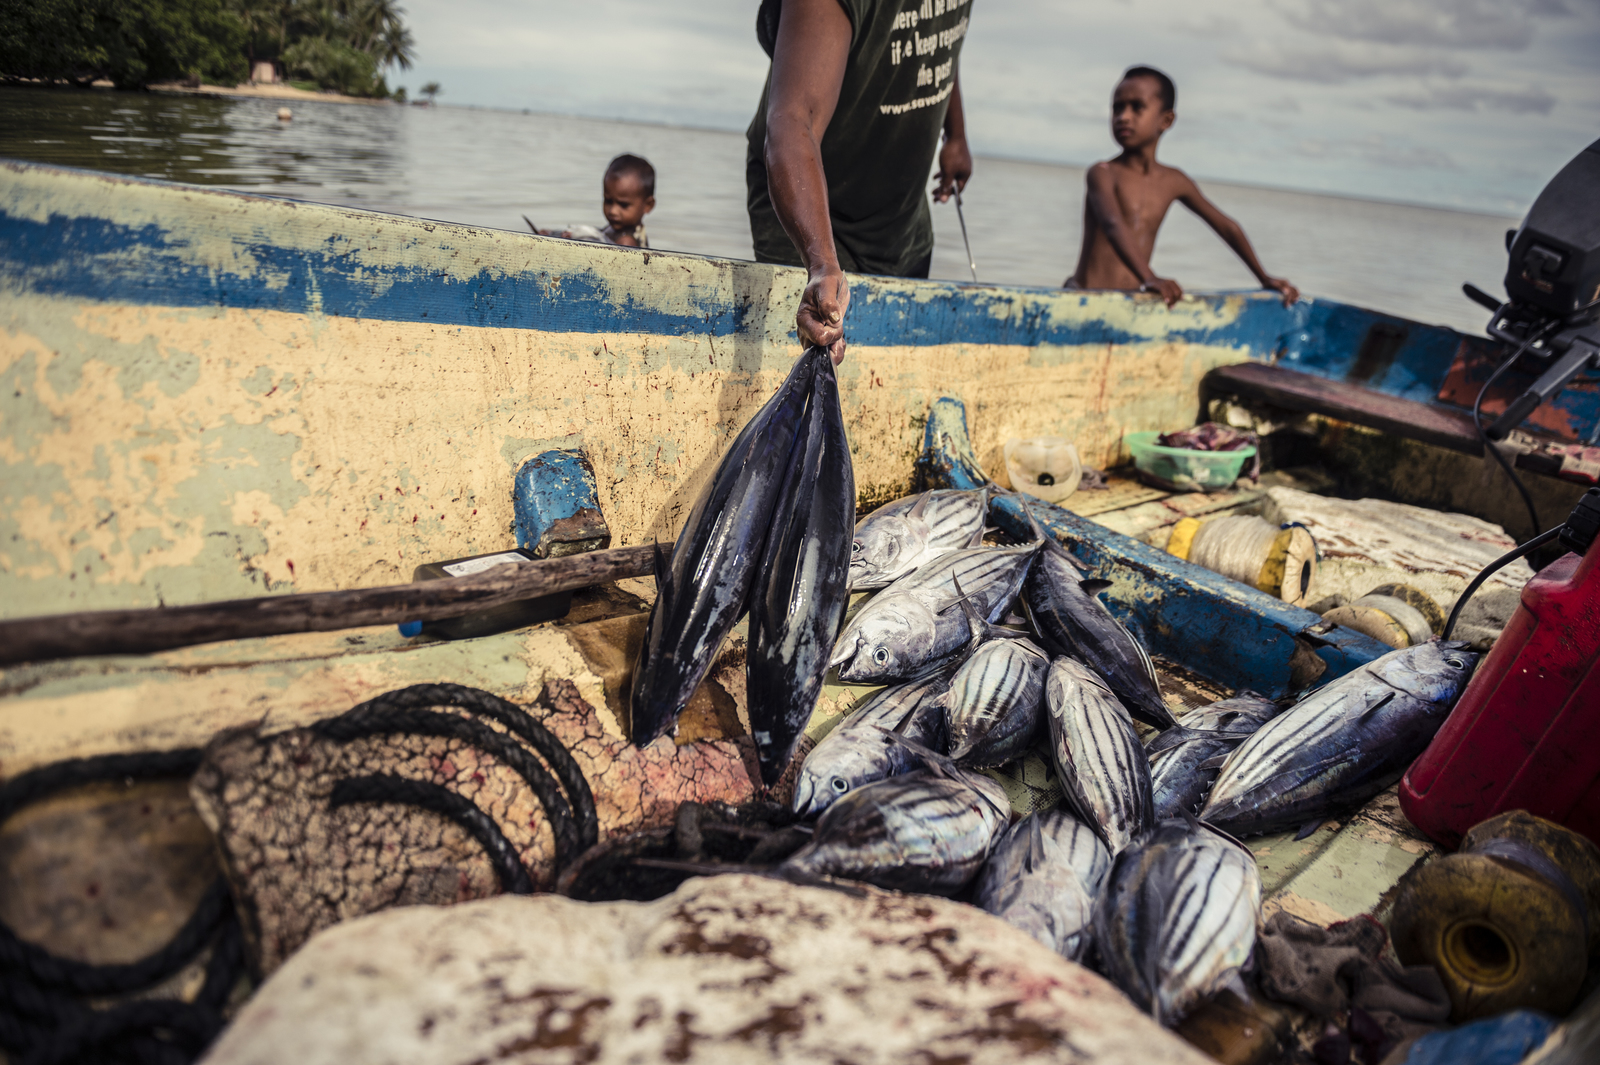 Young boys and two fishermen prepare their morning's catch of skipjack tuna for market, on the beach in front of their homes in the village of Walalung, Kosrae island, Micronesia. (Photo © Nick Hall)